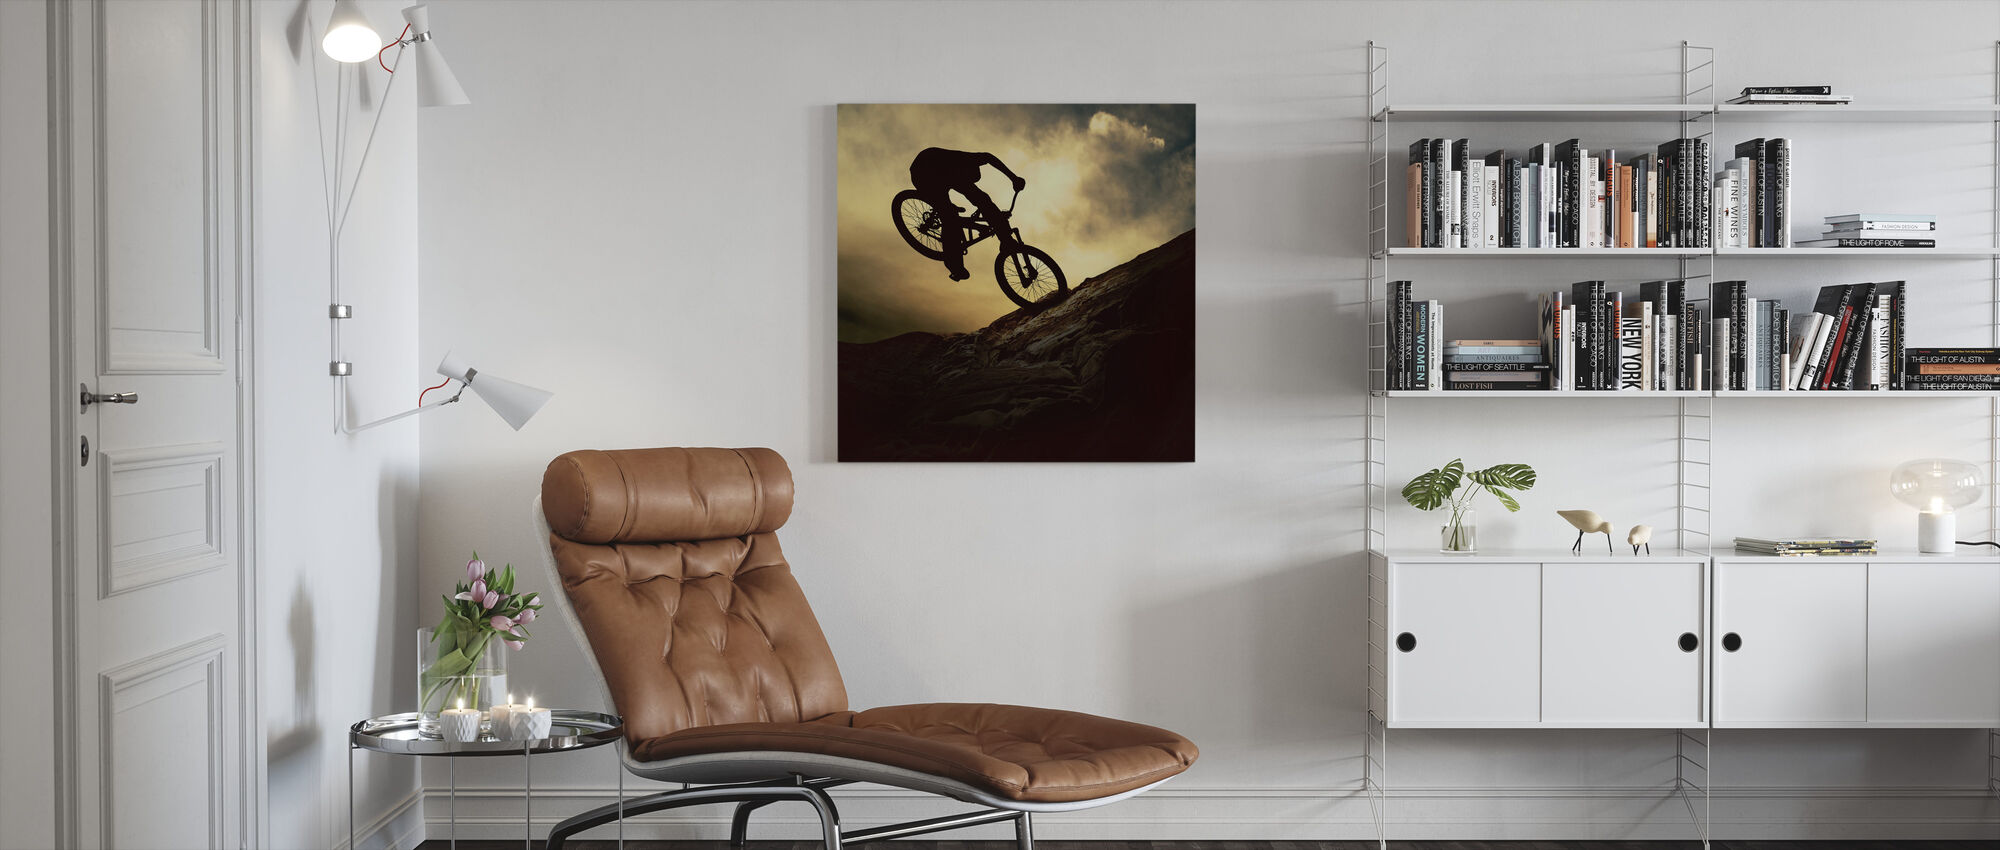 Mountain Bike Rider - Canvas print - Living Room